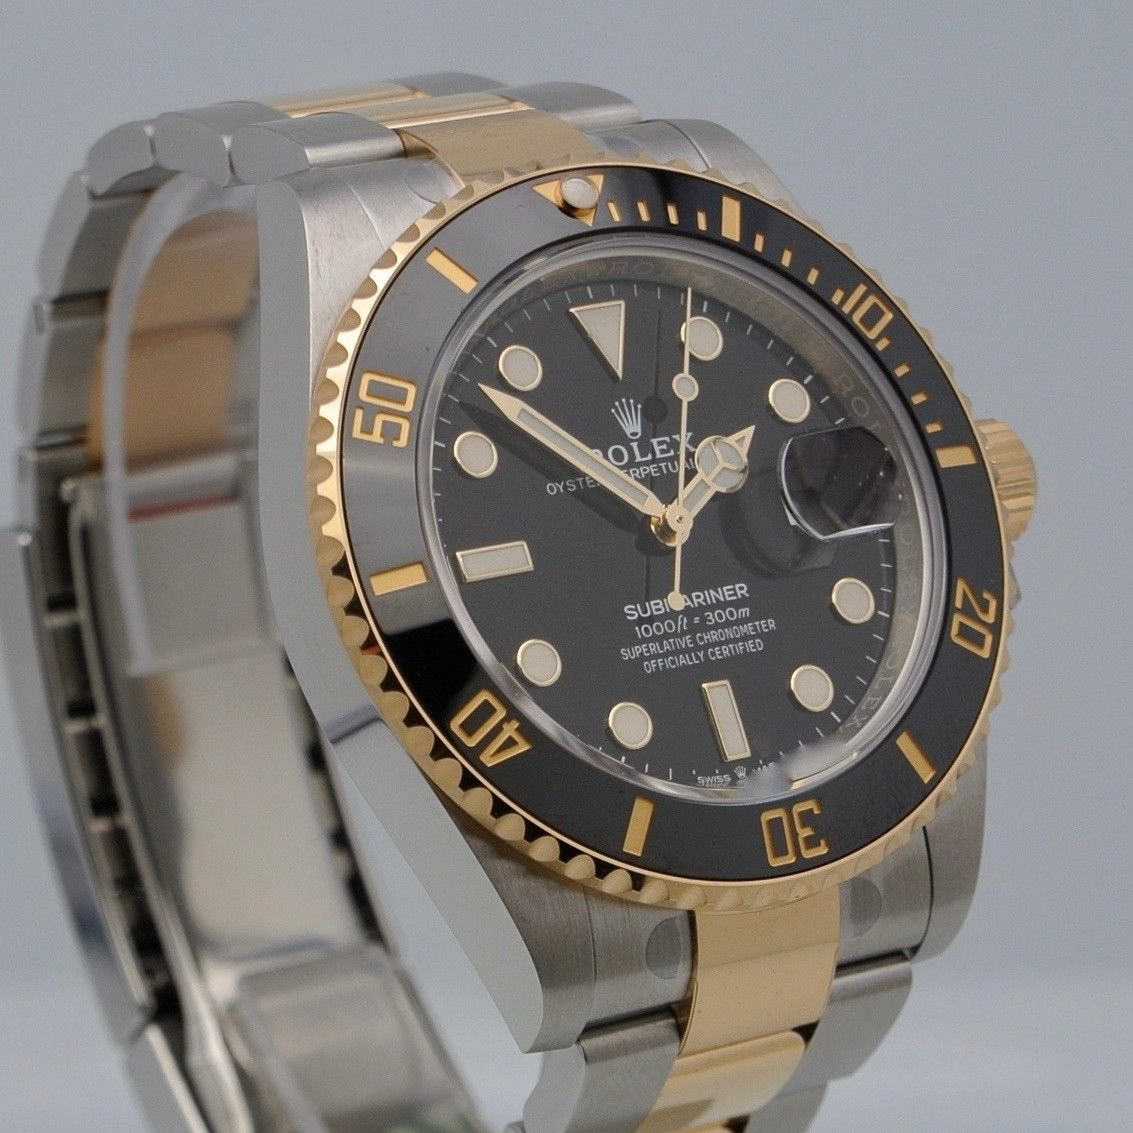 Rolex Submariner Date 41 steel/gold black dial